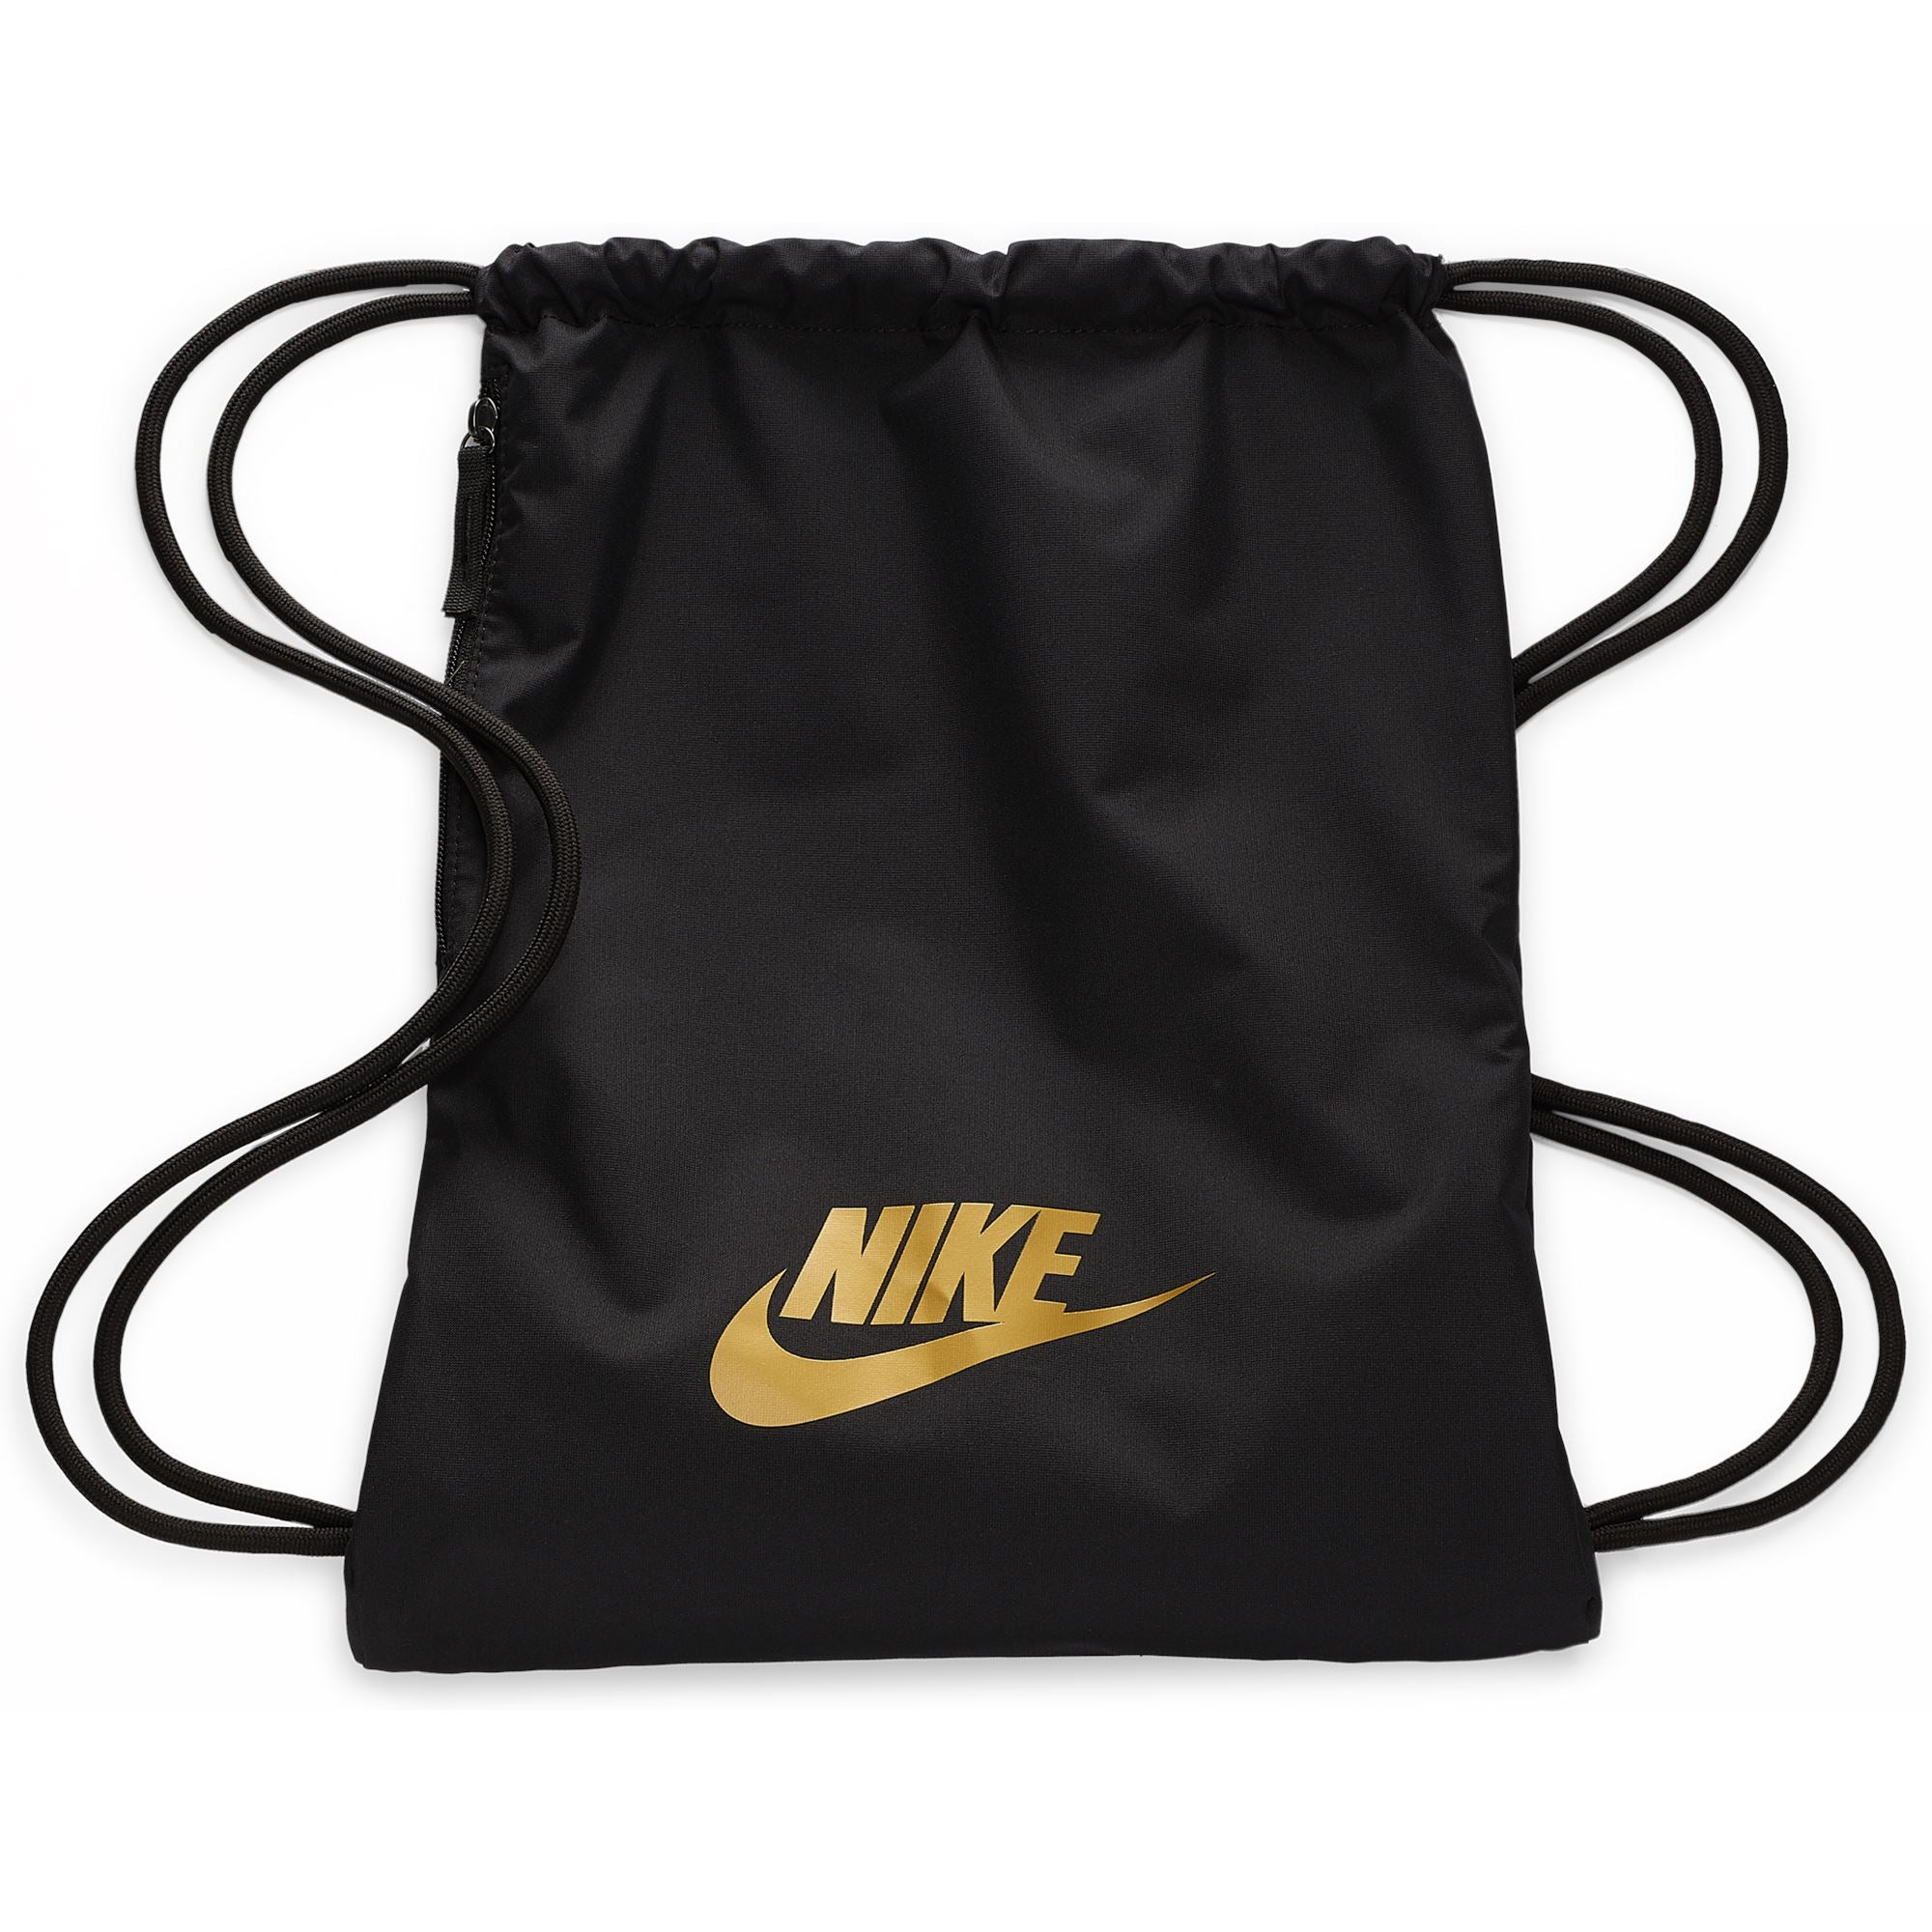 Nike Heritage 2.0 Gym Sack - Black/Black/Metallic Gold SP-Accessories-Bags Nike